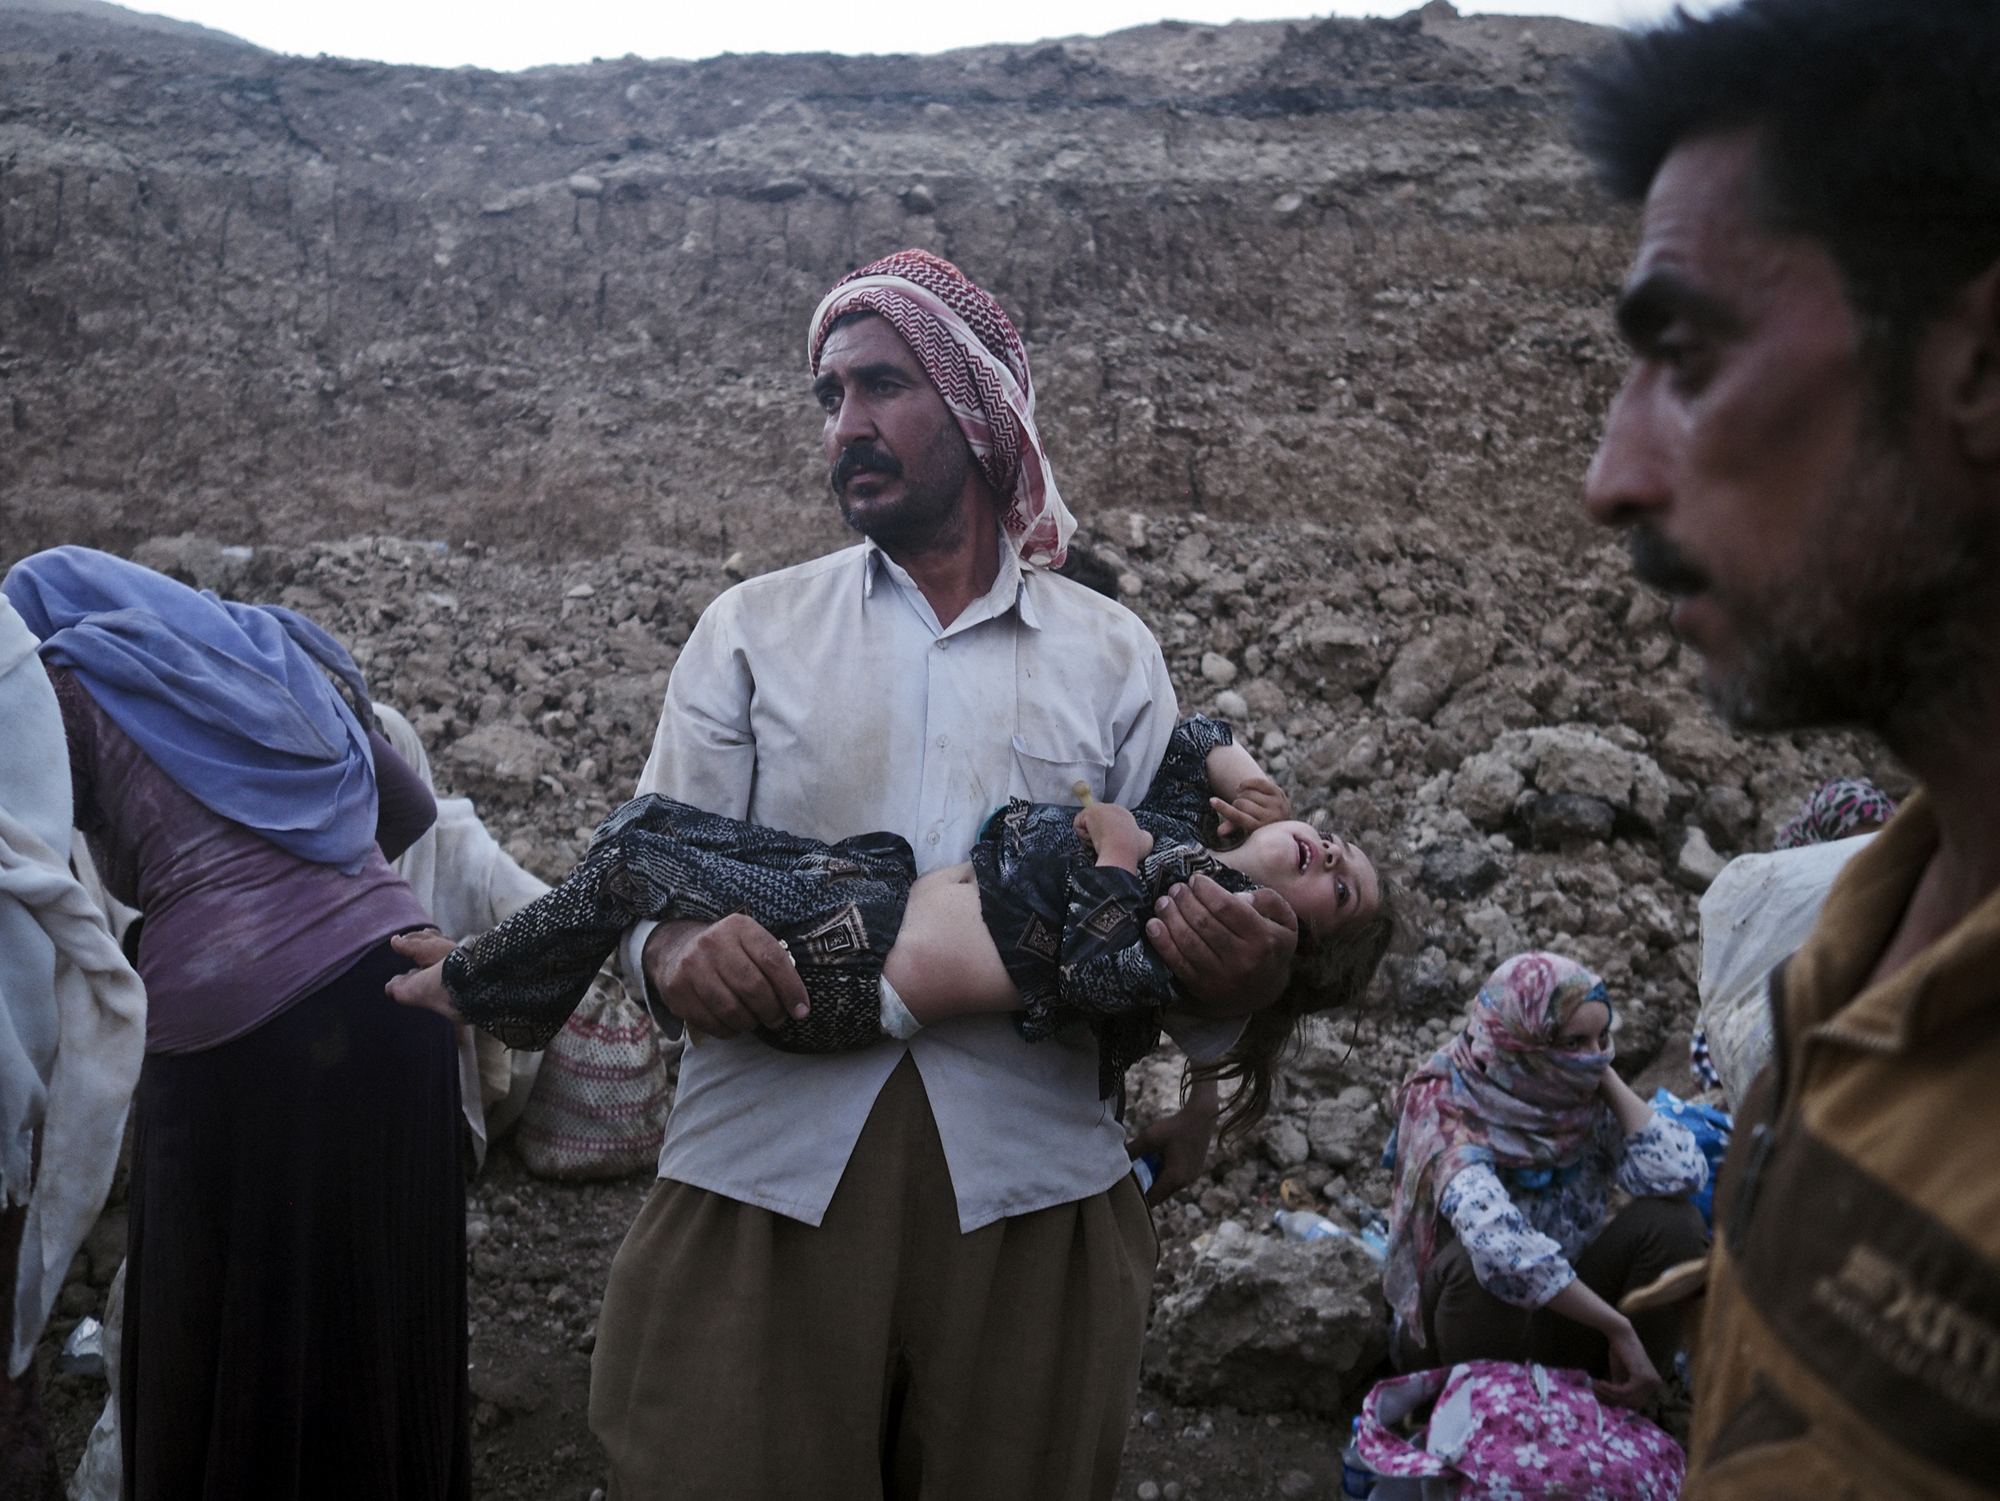 A Yazidi family from Sinjar arrive at the Fishkhabur border crossing between Iraq's Dohuk Province and Syria, Aug. 10, 2014.